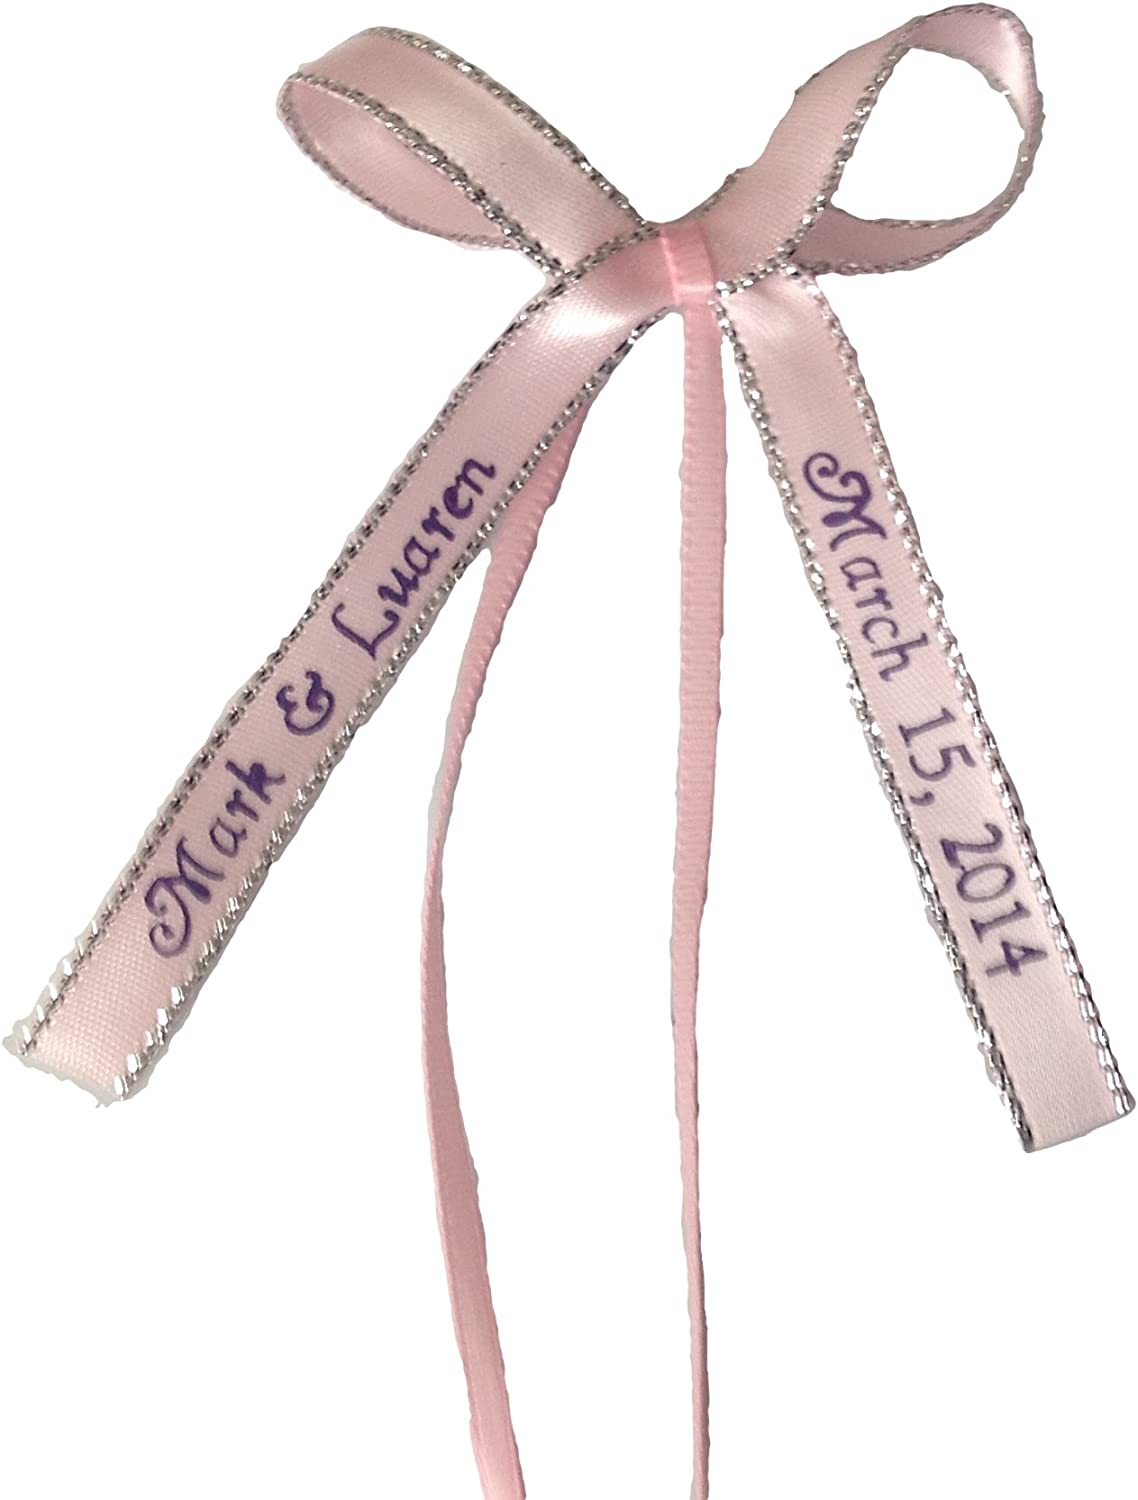 150 silver edge PERSONALIZED satin RIBBONs Party Wedding Baby Shower Favor